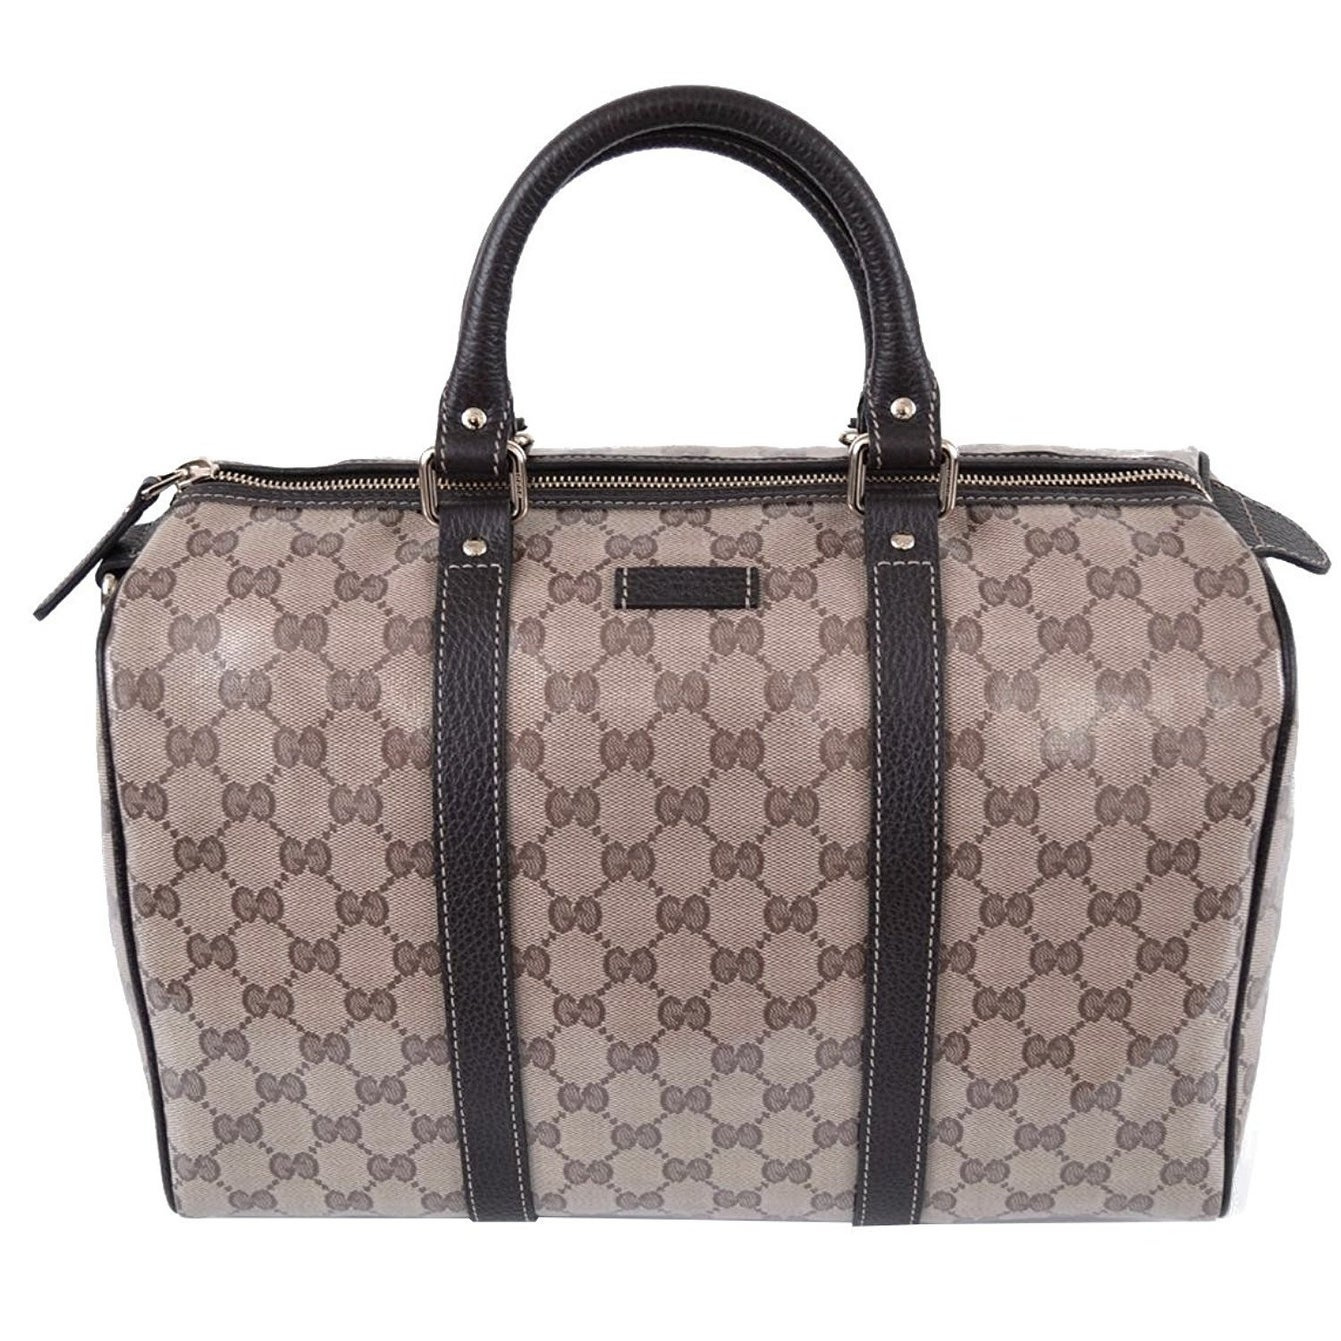 fd152d1e4d77 Shop Gucci Brown Crystal GG Canvas & Leather Boston Bag - Free Shipping  Today - Overstock - 15300590